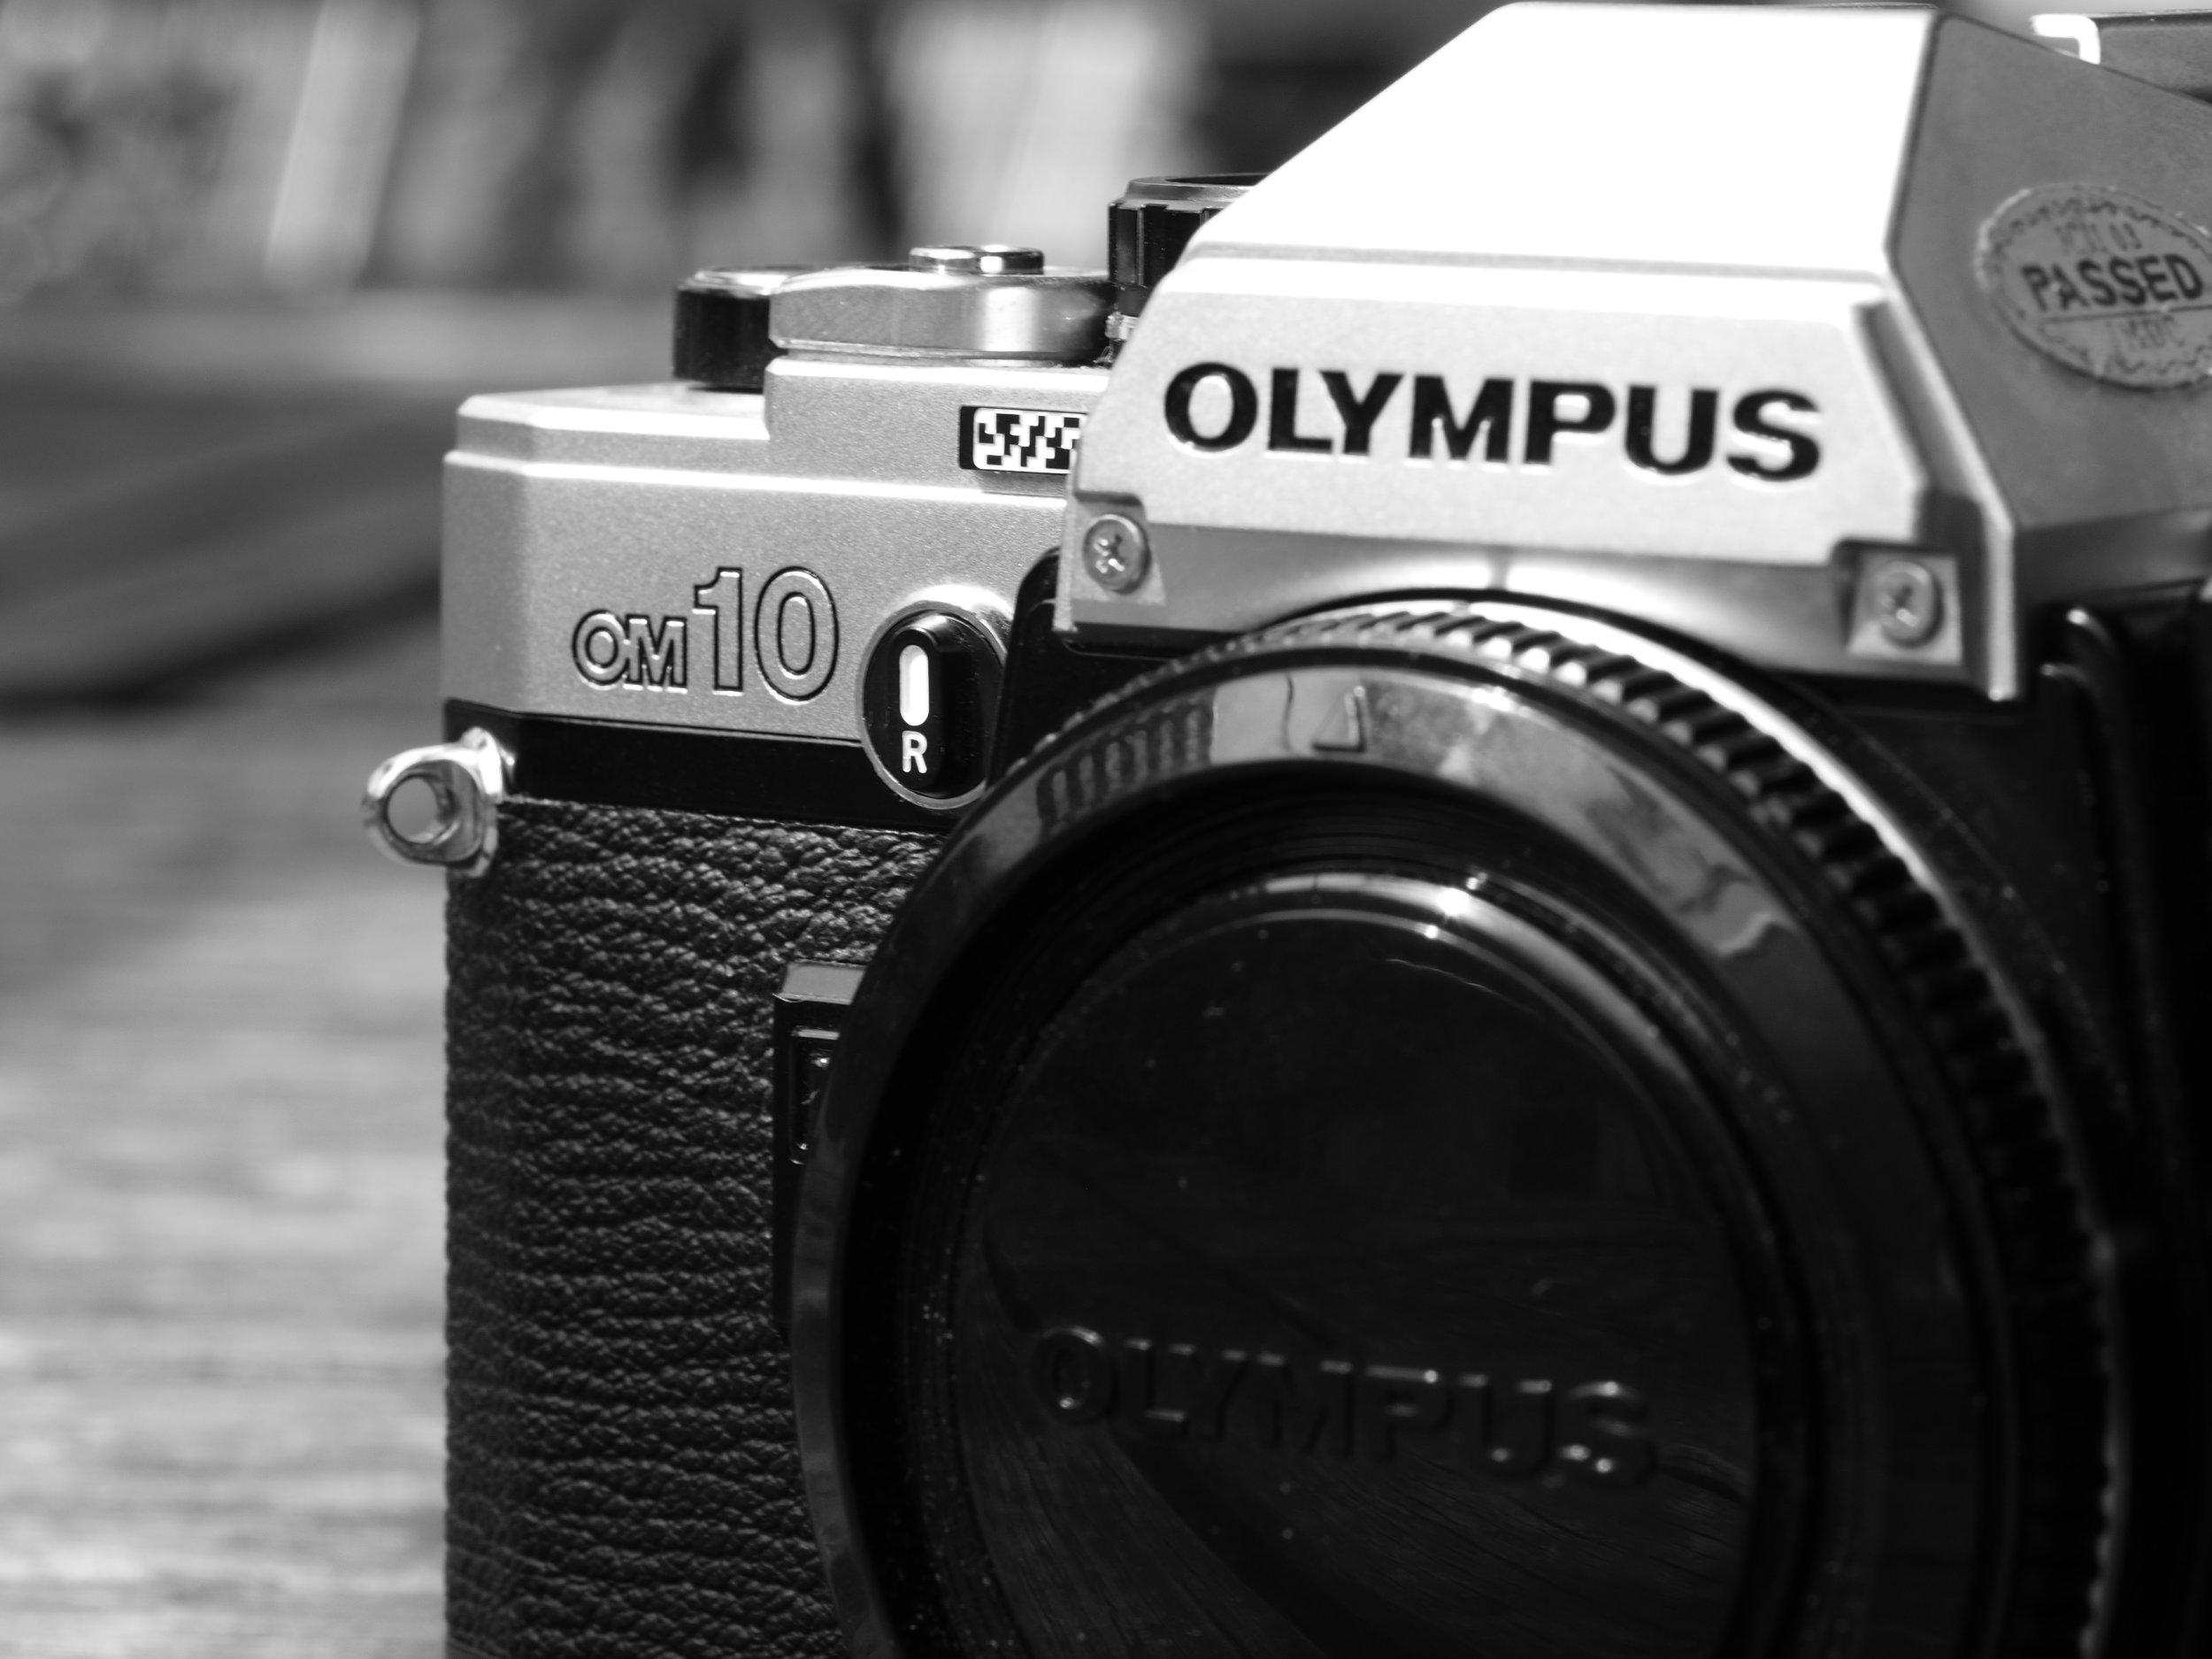 Olympus OM10 Body. Classic Design in chrome and black.